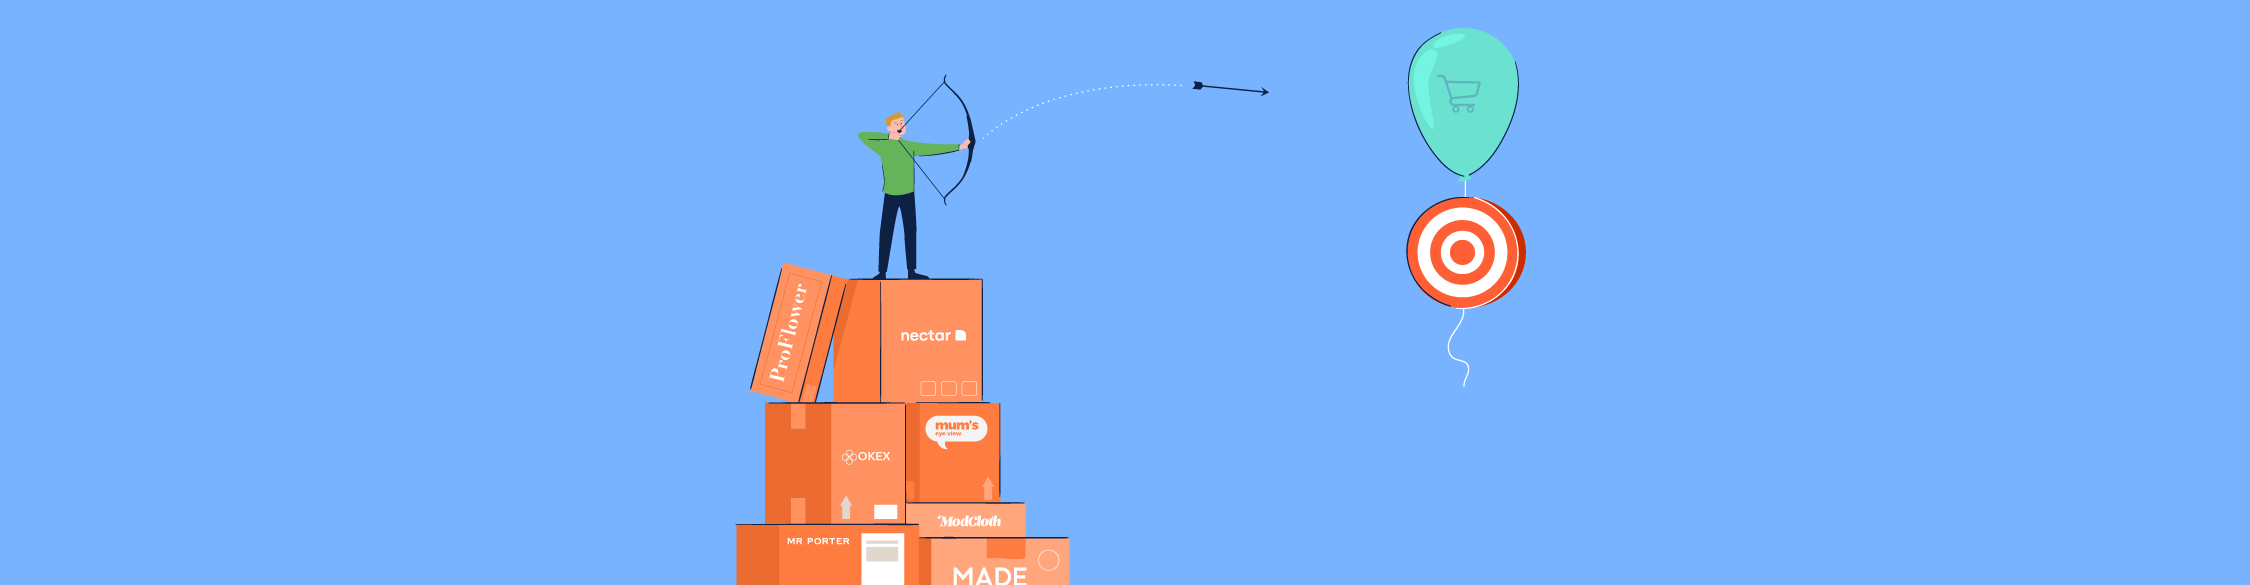 An illustration of a man on boxes representing ecommerce companies shooting an arrow to a target.